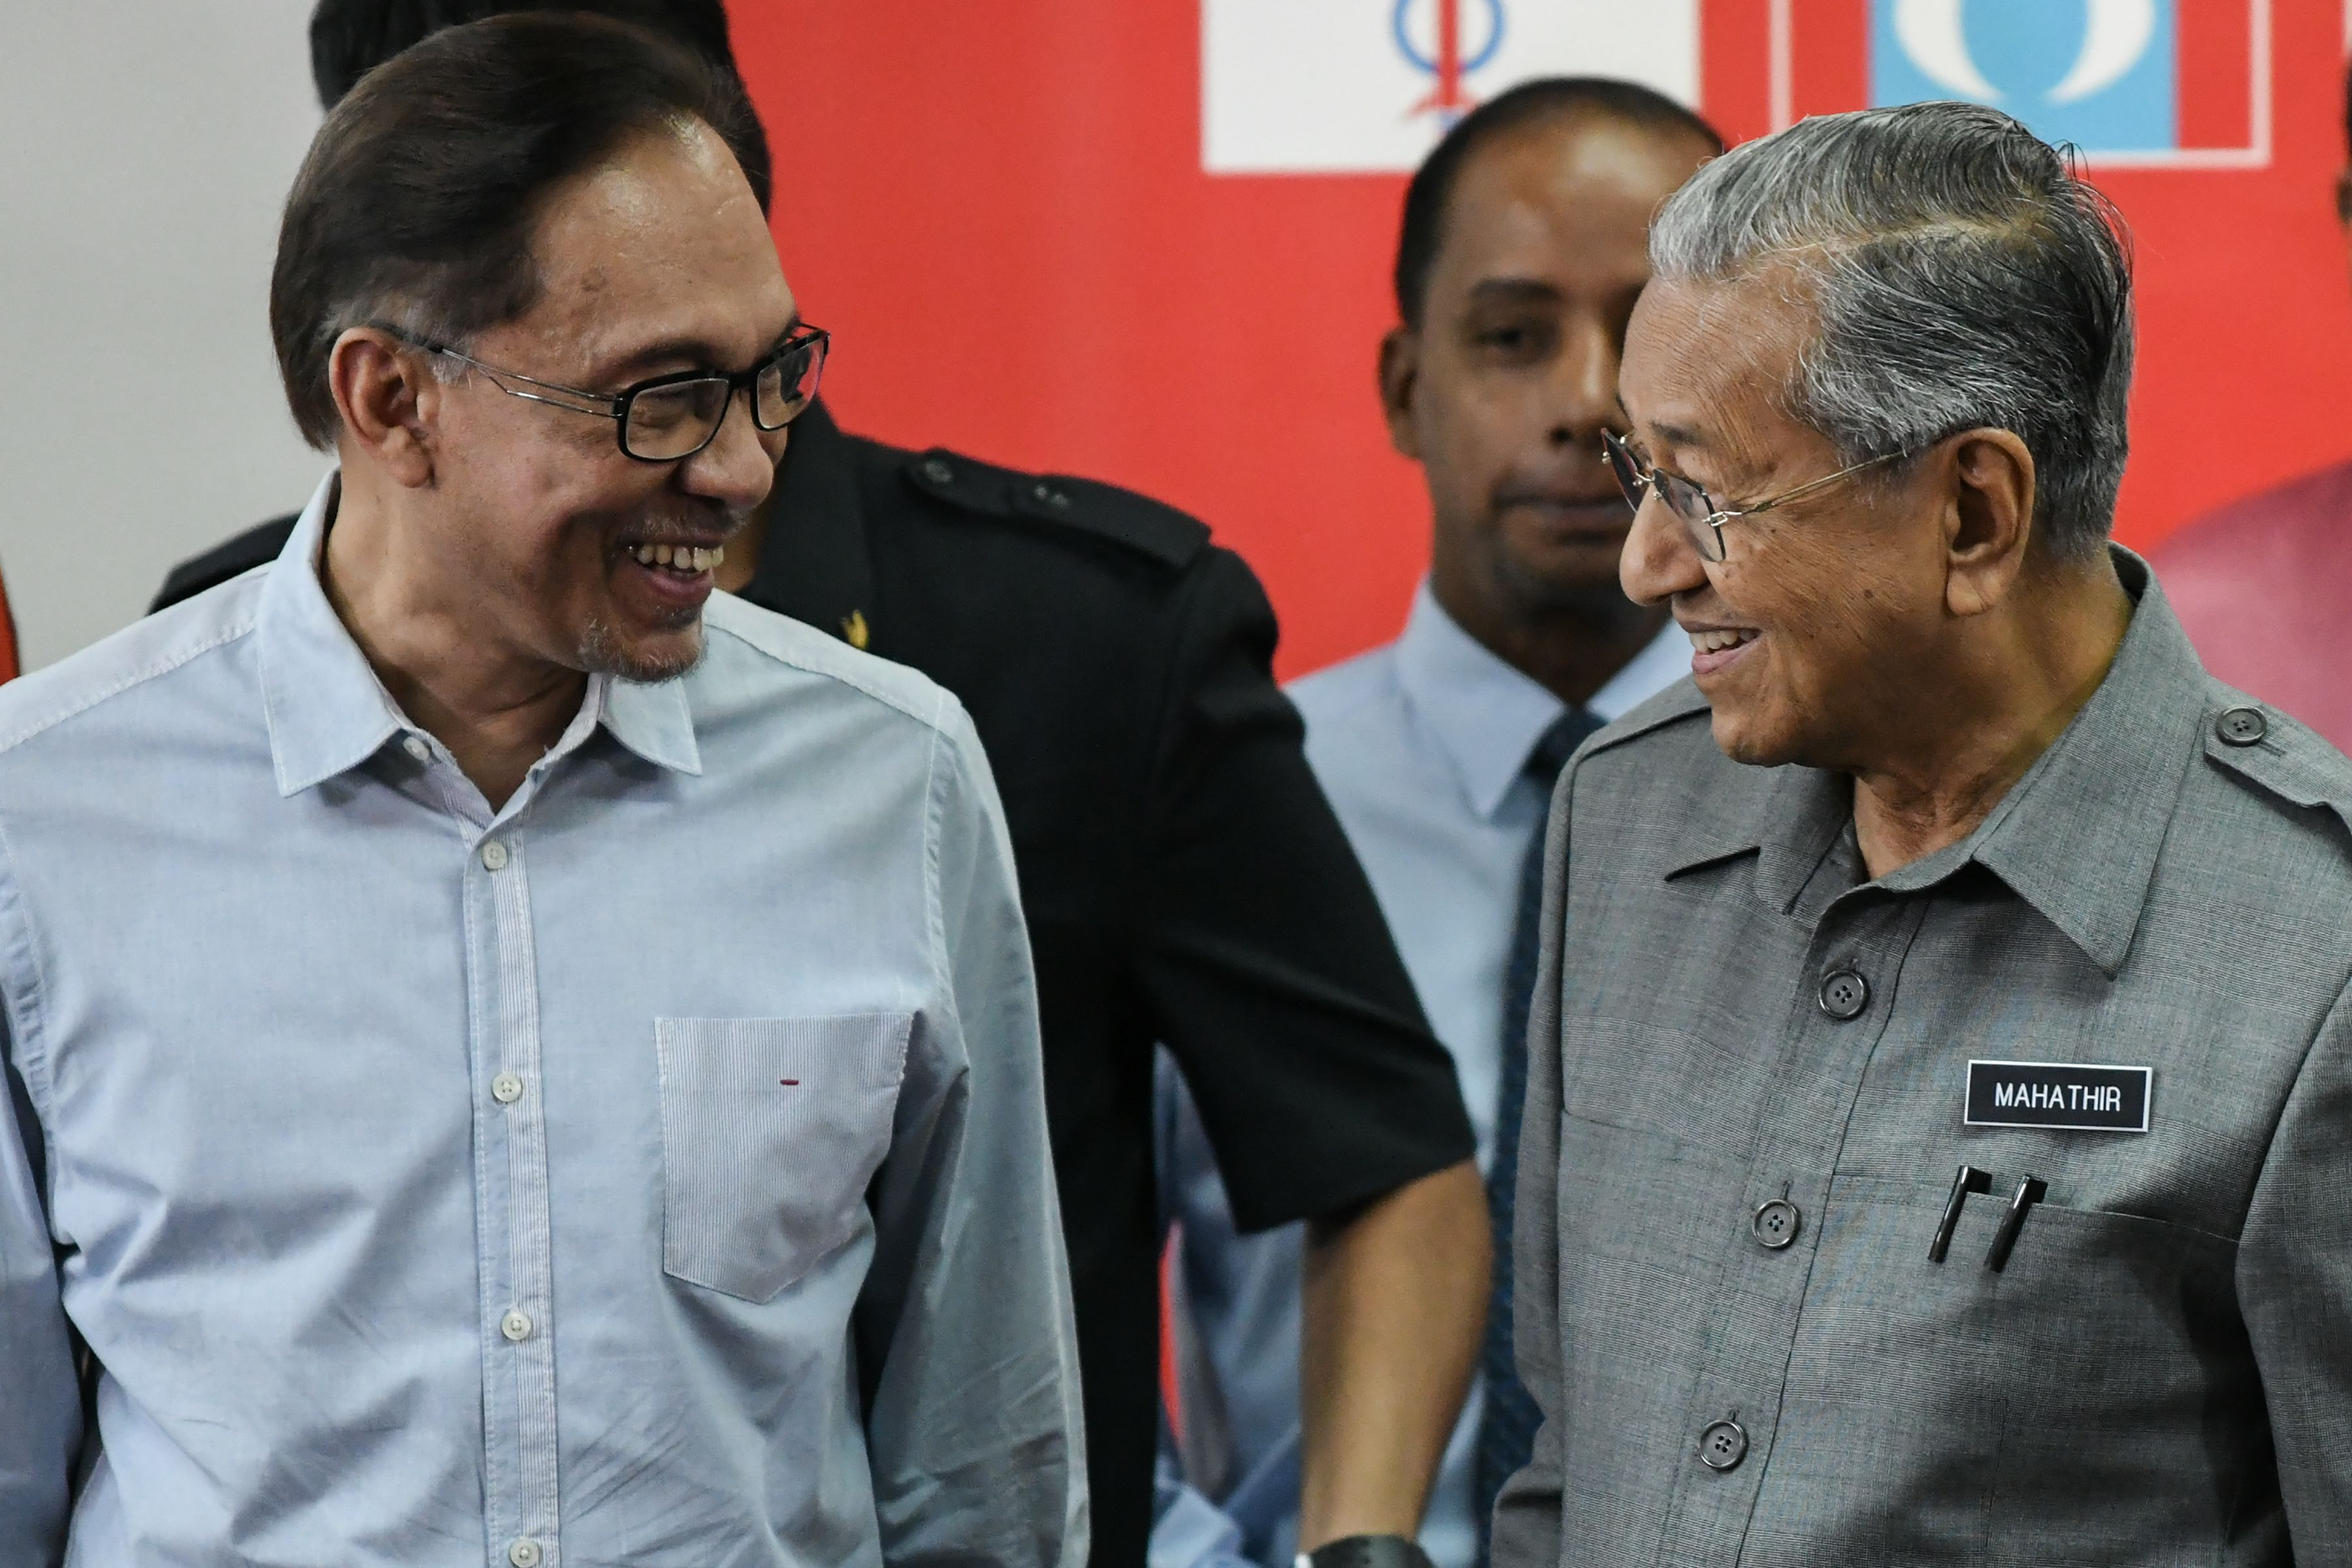 Malaysia's Prime Minister Mahathir Mohamad (R) and politician Anwar Ibrahim, leave after a press conference in Kuala Lumpur on June 1, 2018.